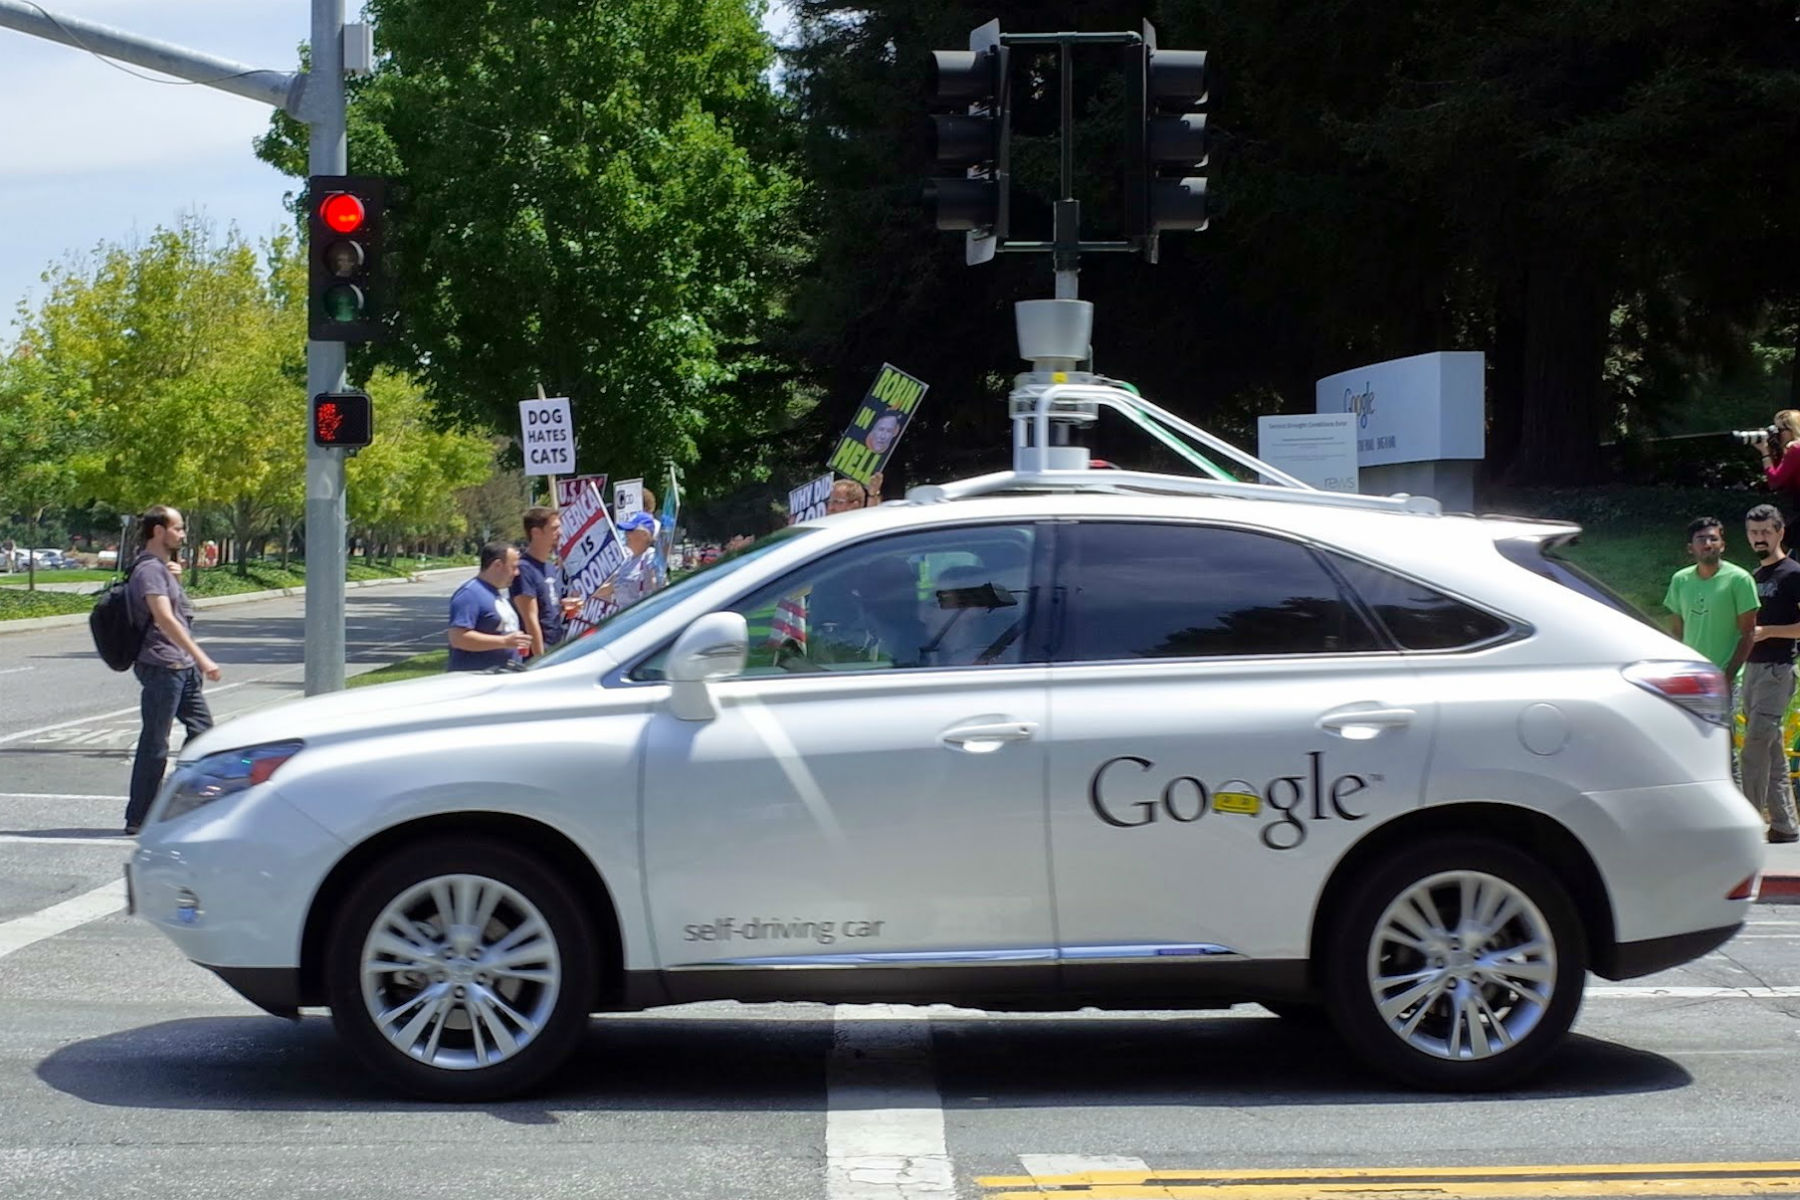 self driving car research paper Experiments have been conducted on self-driving cars since at least the 1920s  promising trials  since then, numerous major companies and research  organizations have developed working prototype autonomous vehicles including .